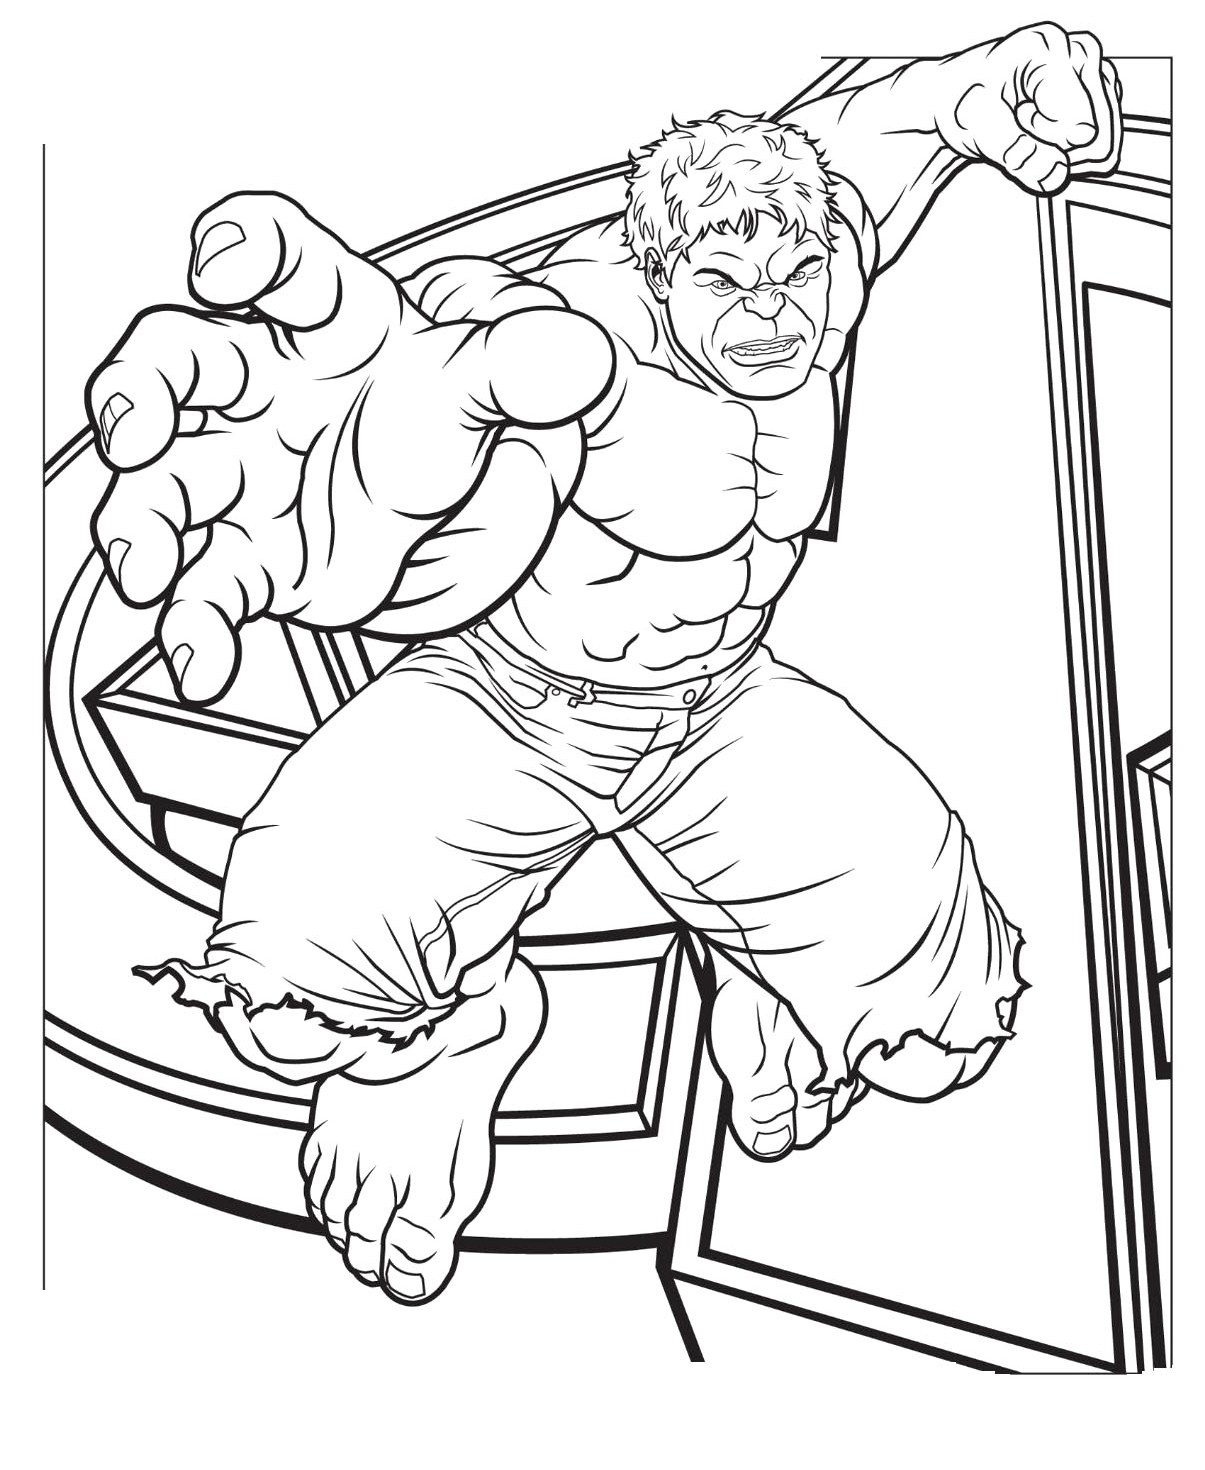 1205x1470 Hulk Jump Coloring Page For Kids Color Sheets